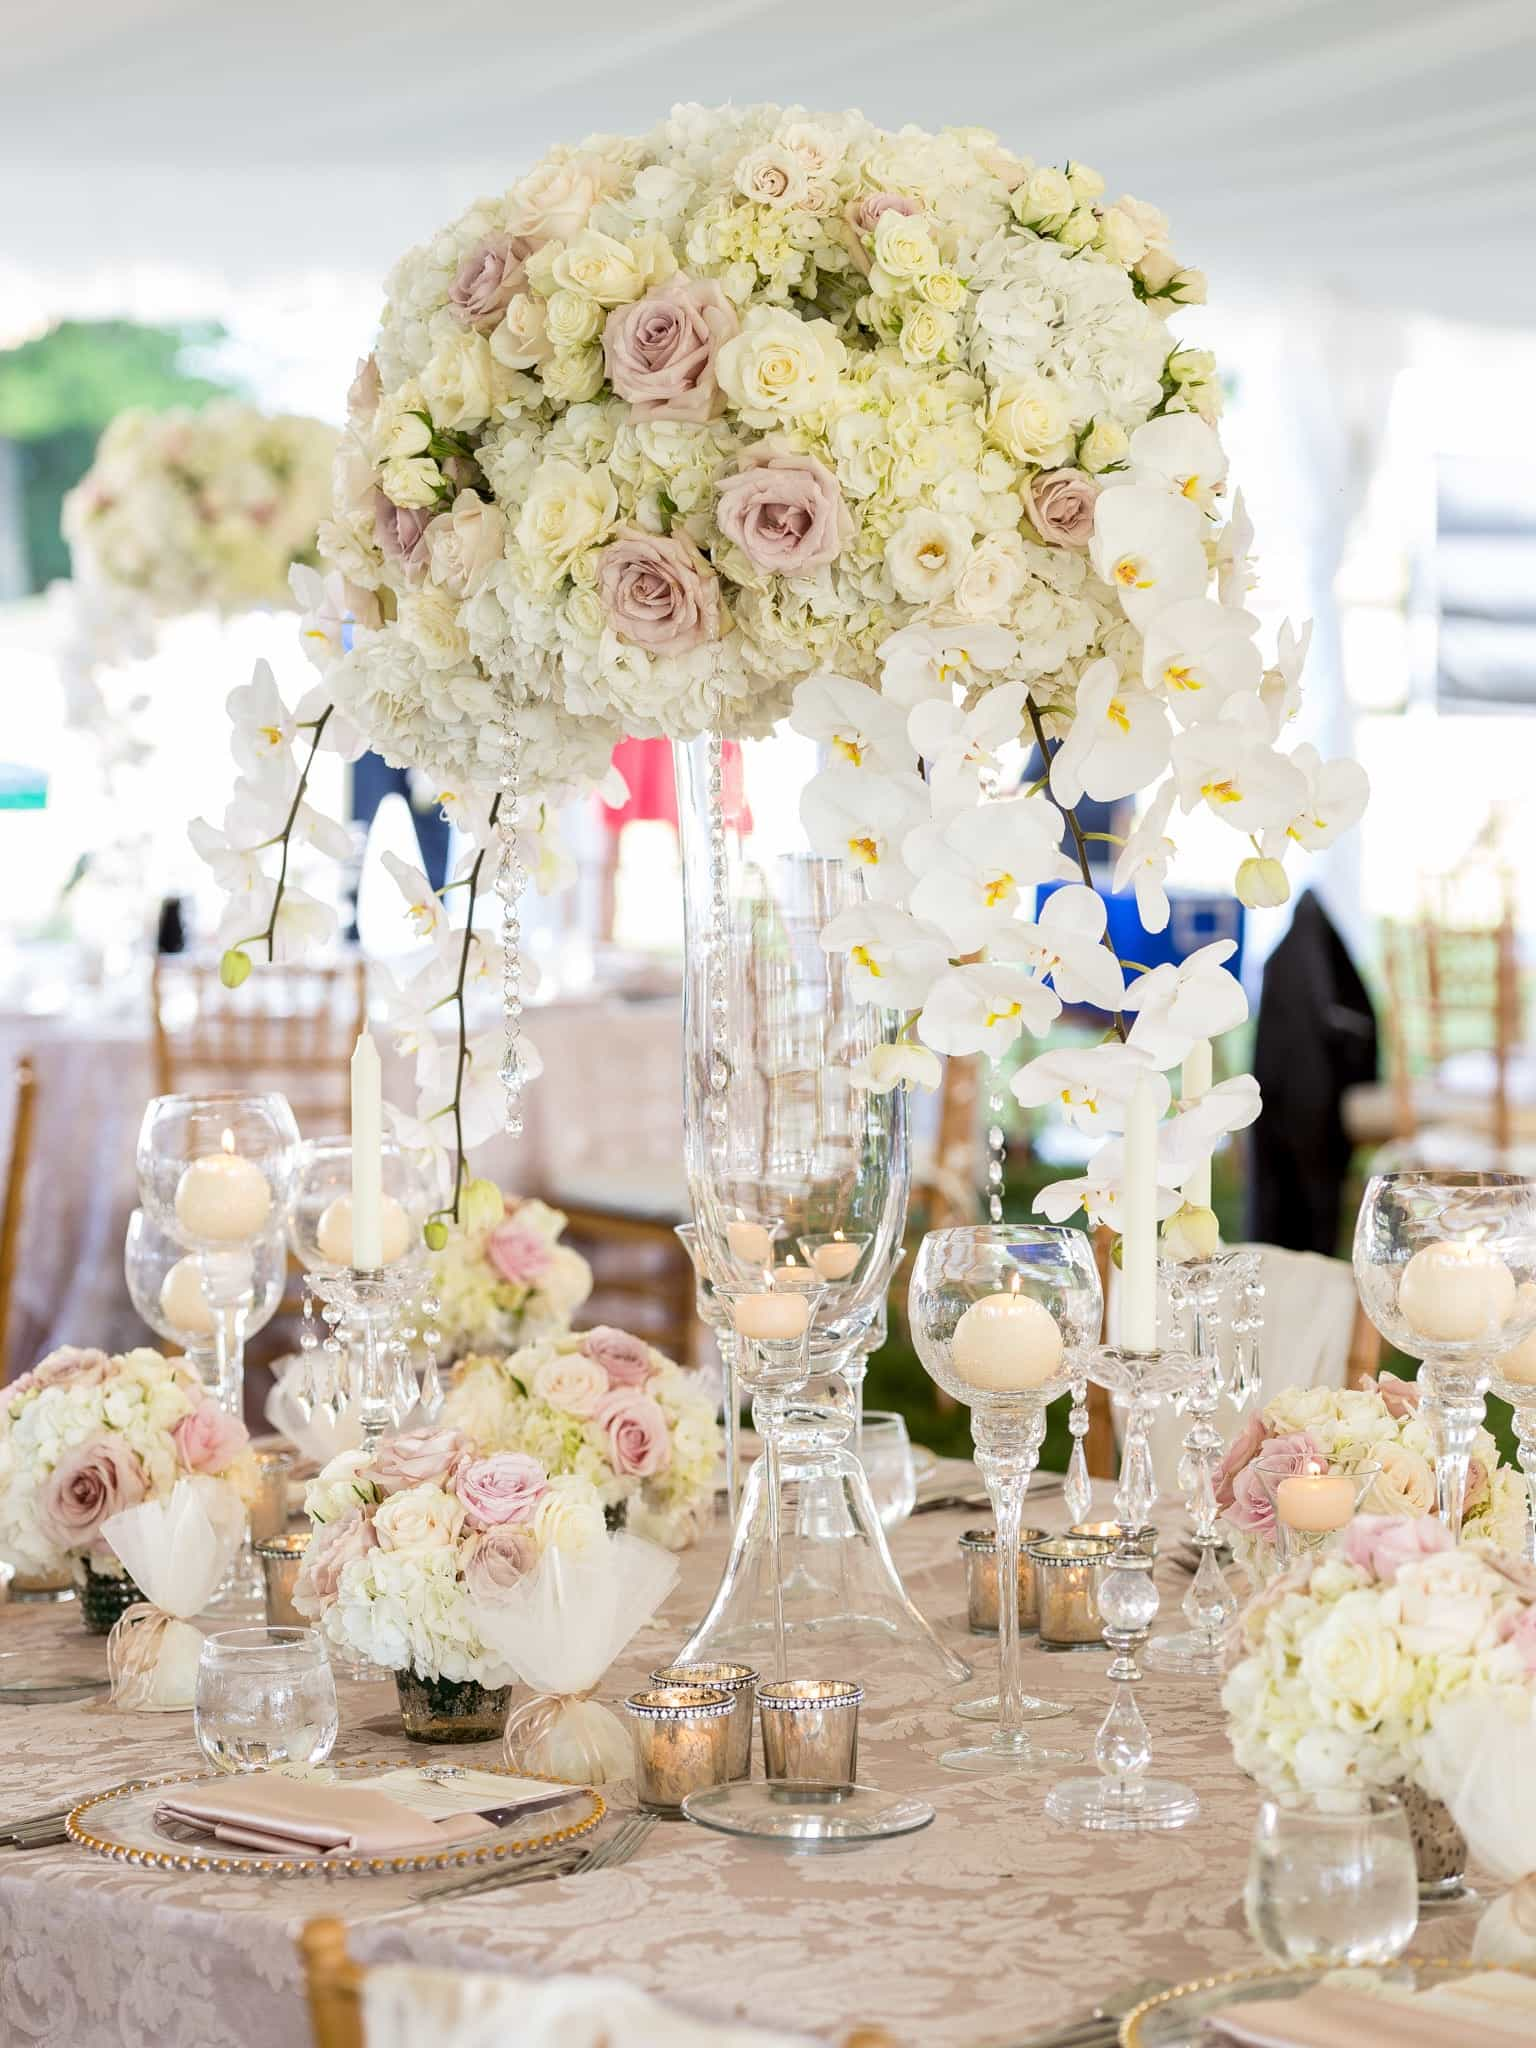 Centerpieces: How to Choose the Right Wedding Centerpieces for Round ...